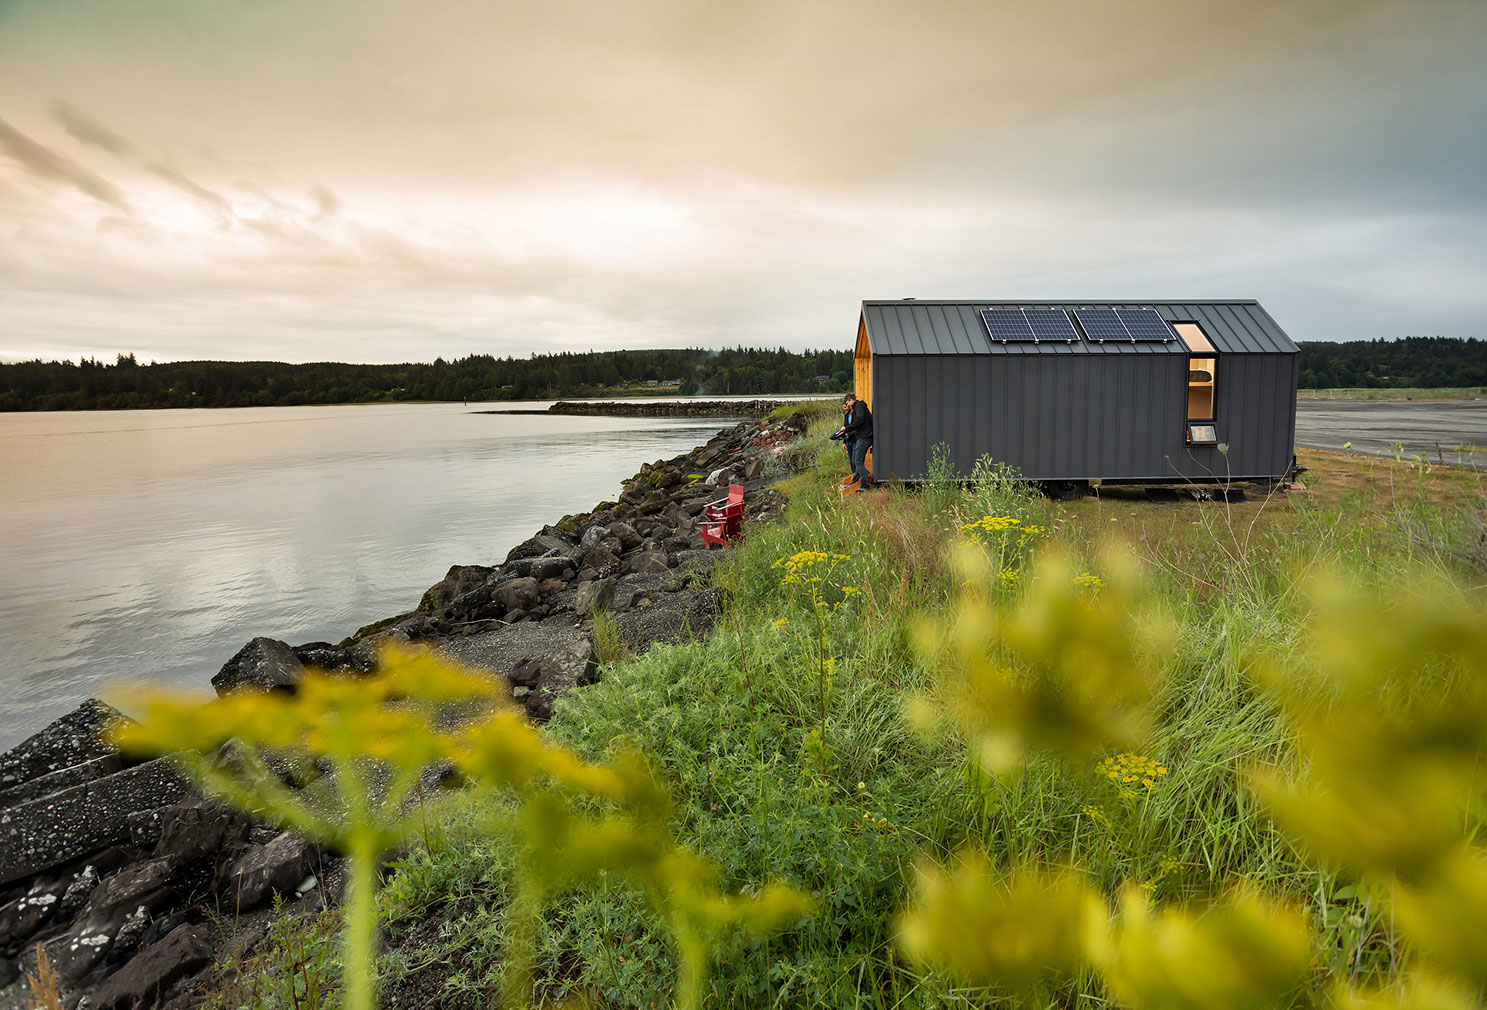 Modern Shed has released a towable prefab cabin, complete with a gable roof and wood-burning stove